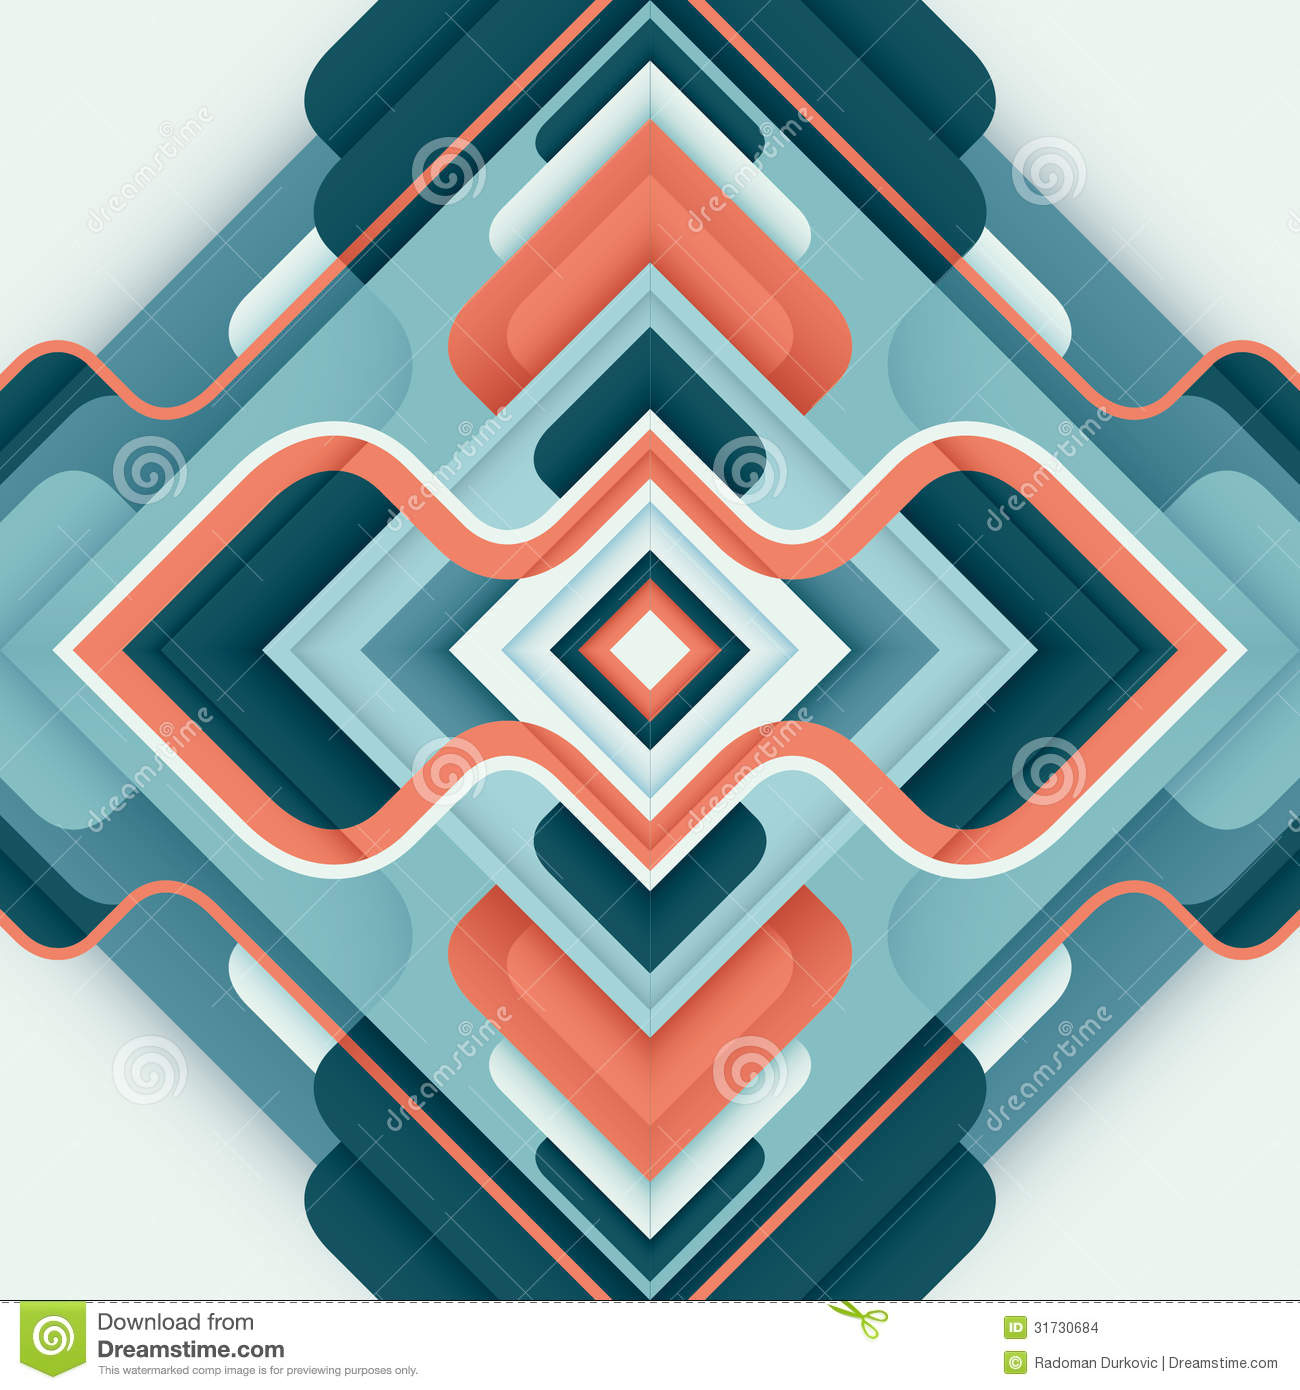 Modern abstract graphic.